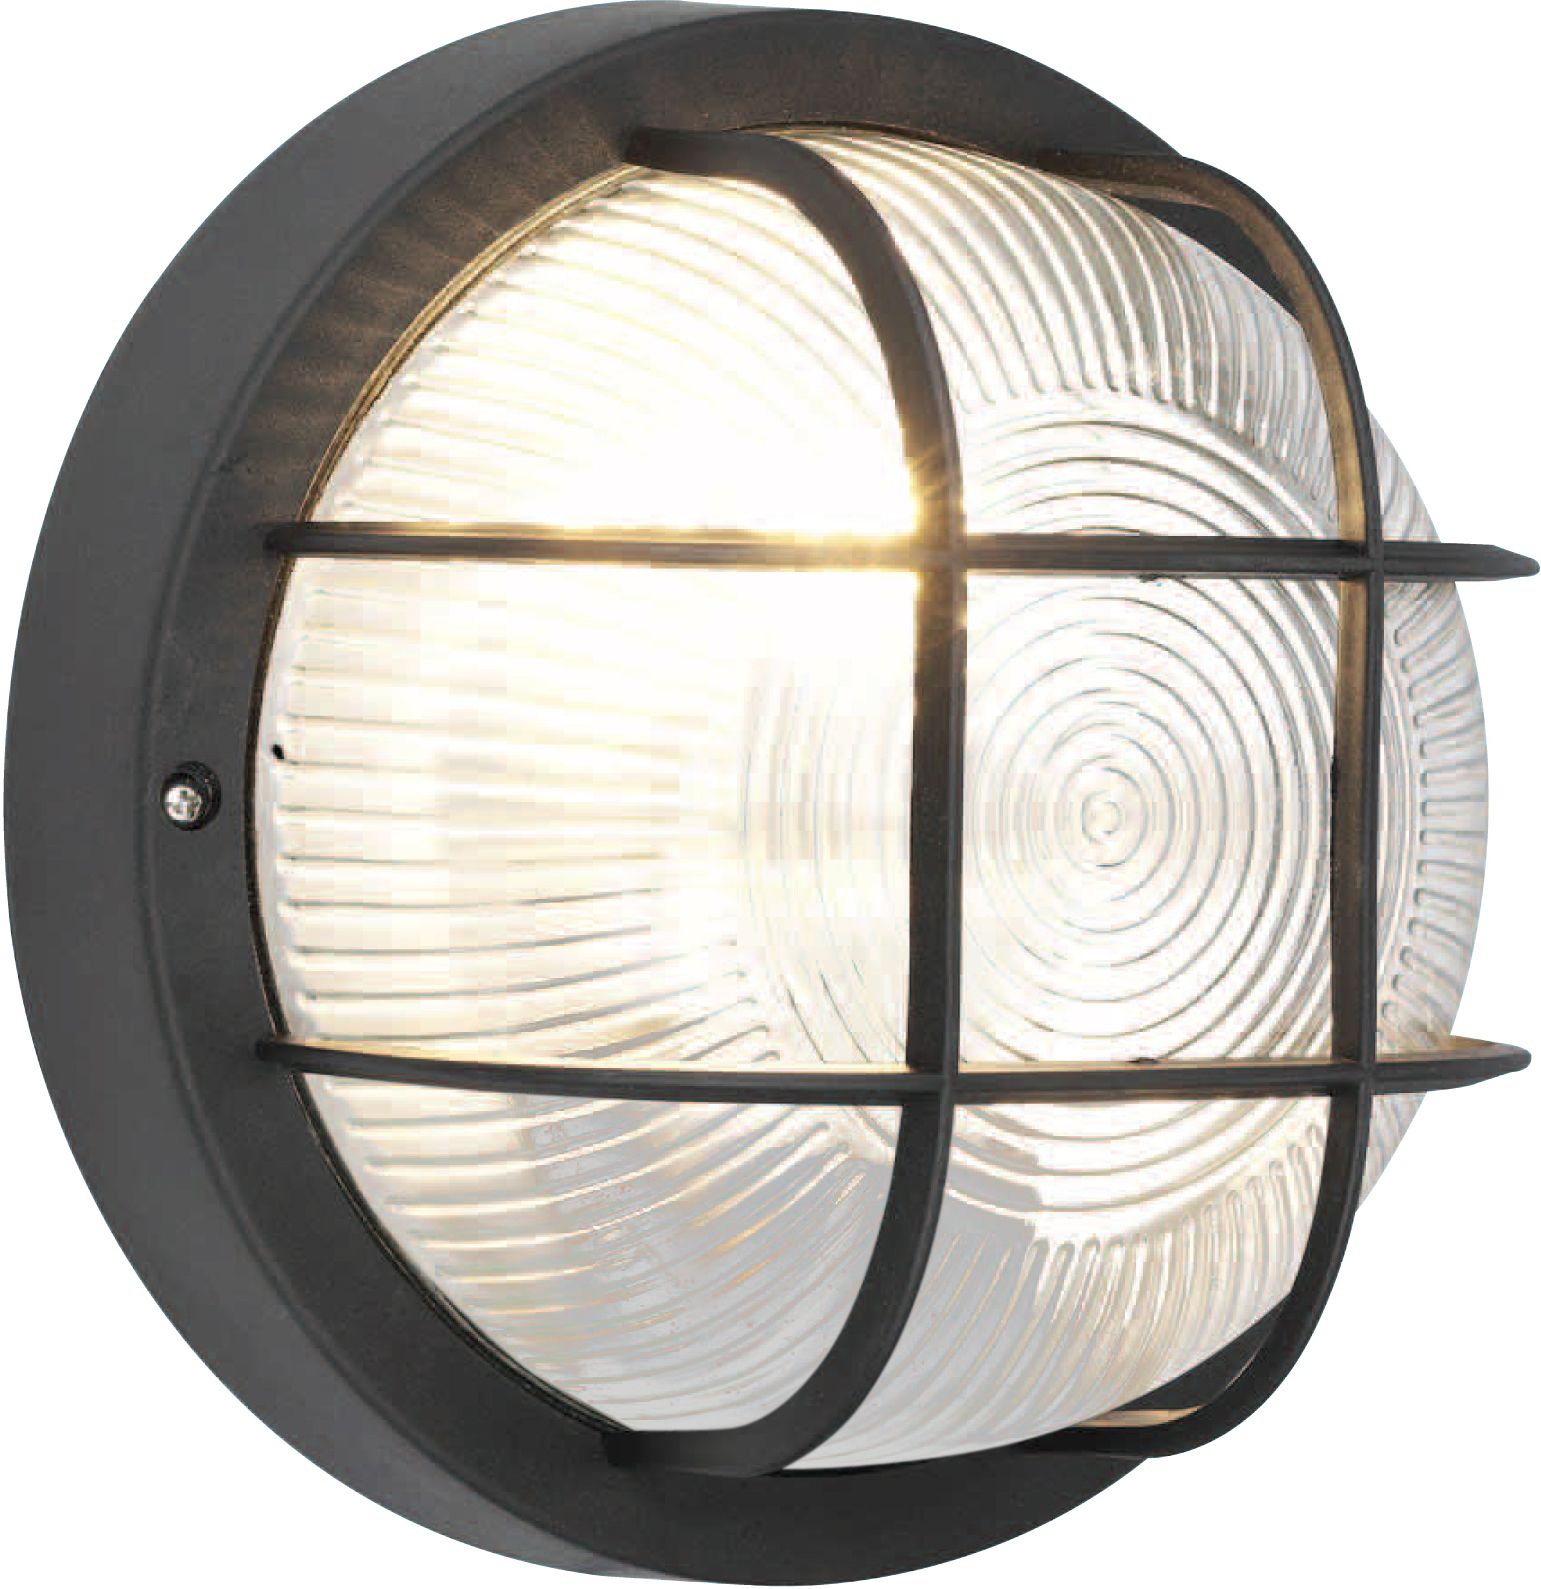 Modern wall lights b and q trweb for blooma thetis black mains powered external wall light departments diy at bq aloadofball Images